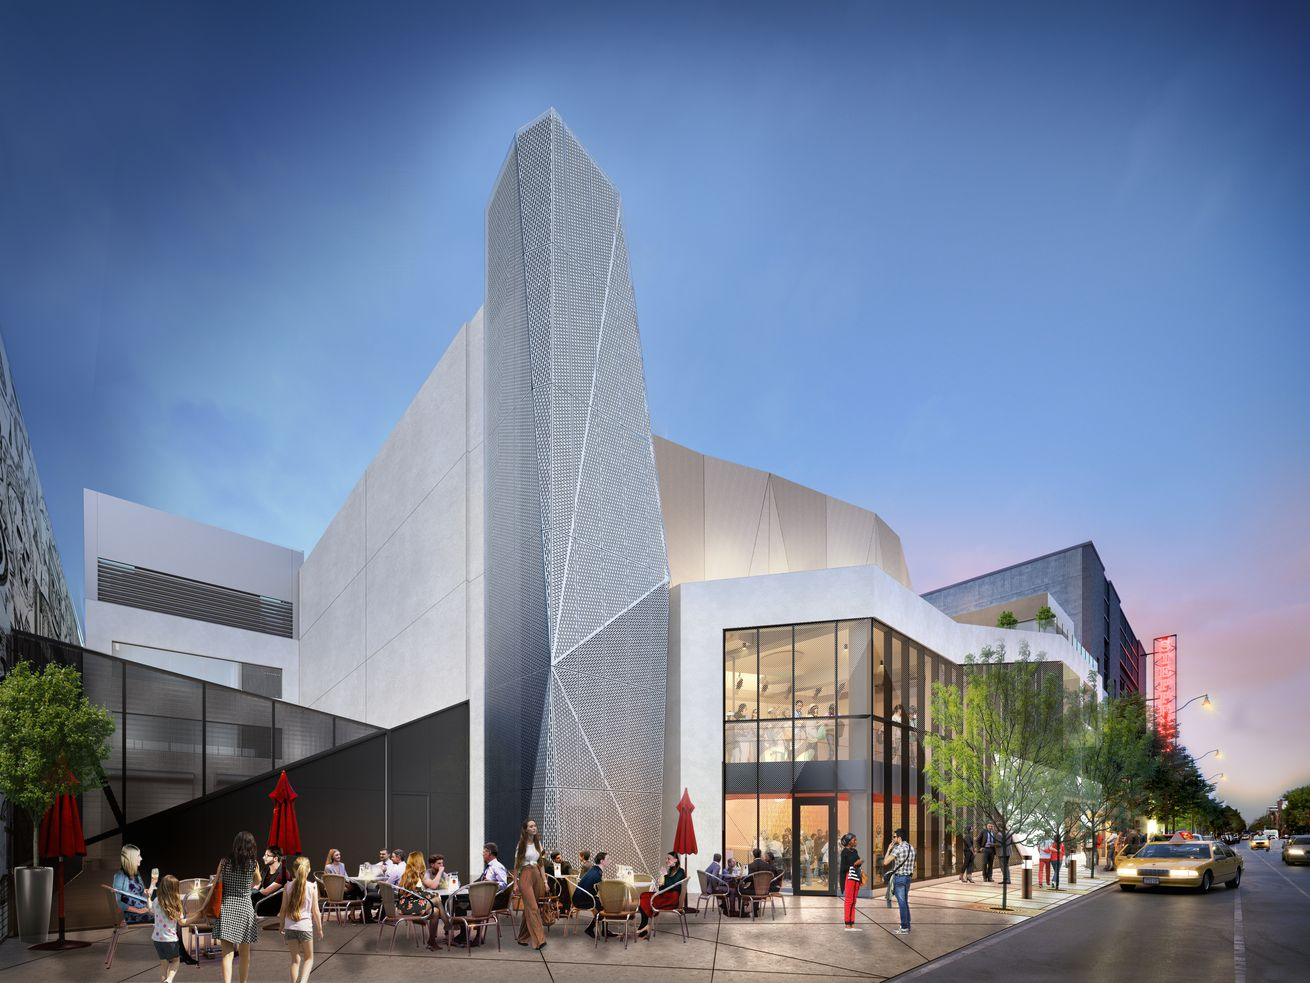 Steppenwolf Theatre's new 50,000-square-foot theater and education center (shown in rendering) will debut on Halsted Street as part of the 2021-2022 season.